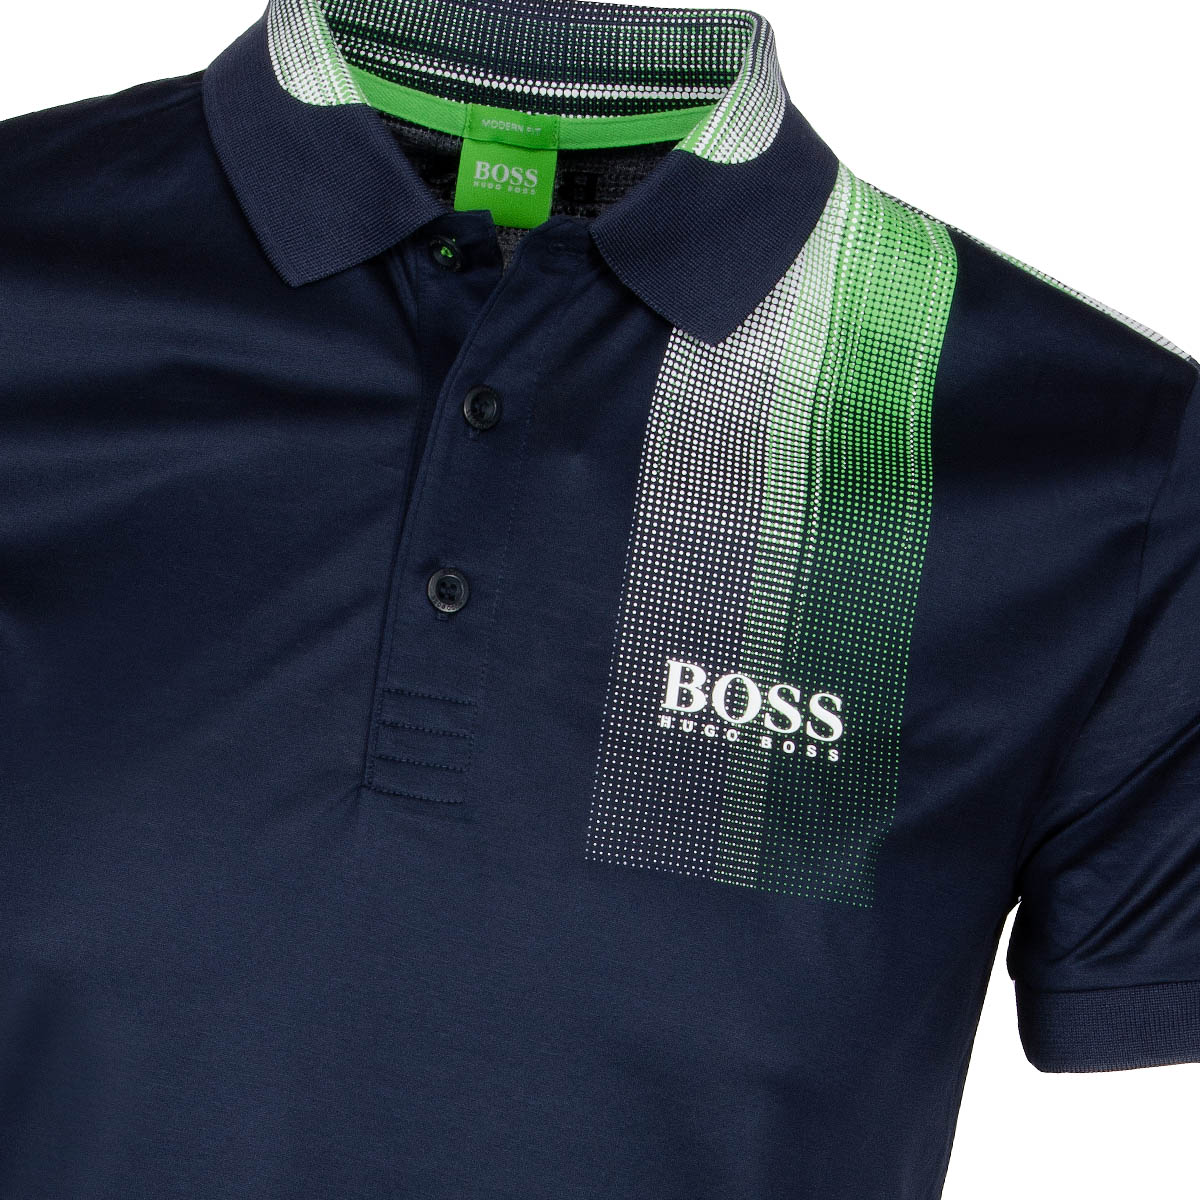 hugo boss paddy pro 5 polo shirt navy scottsdale golf. Black Bedroom Furniture Sets. Home Design Ideas